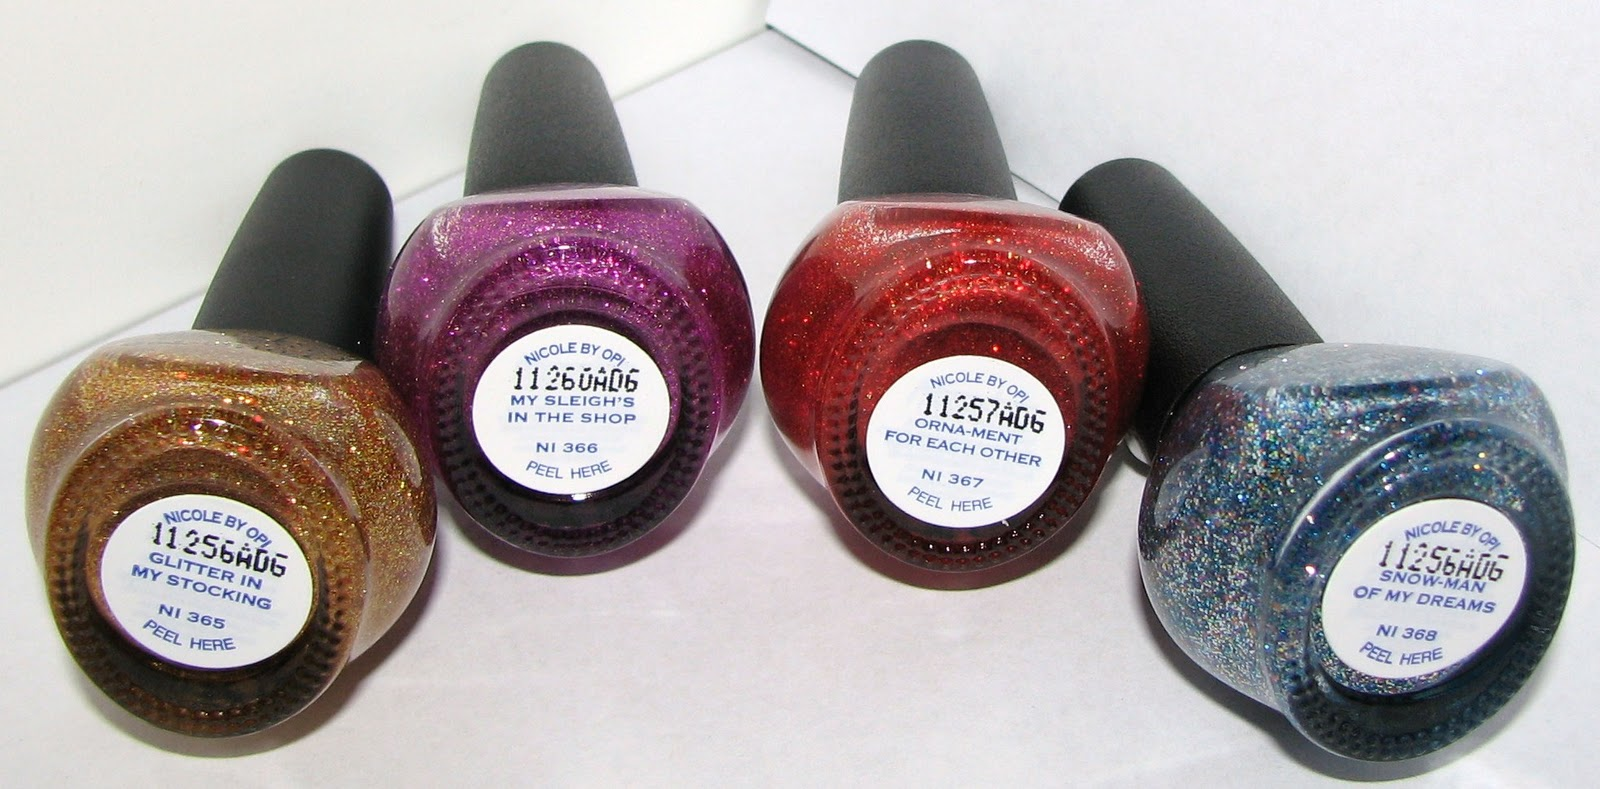 Nicole by OPI Glitter In My Stocking, My Sleigh\'s In The Shop, Orna ...